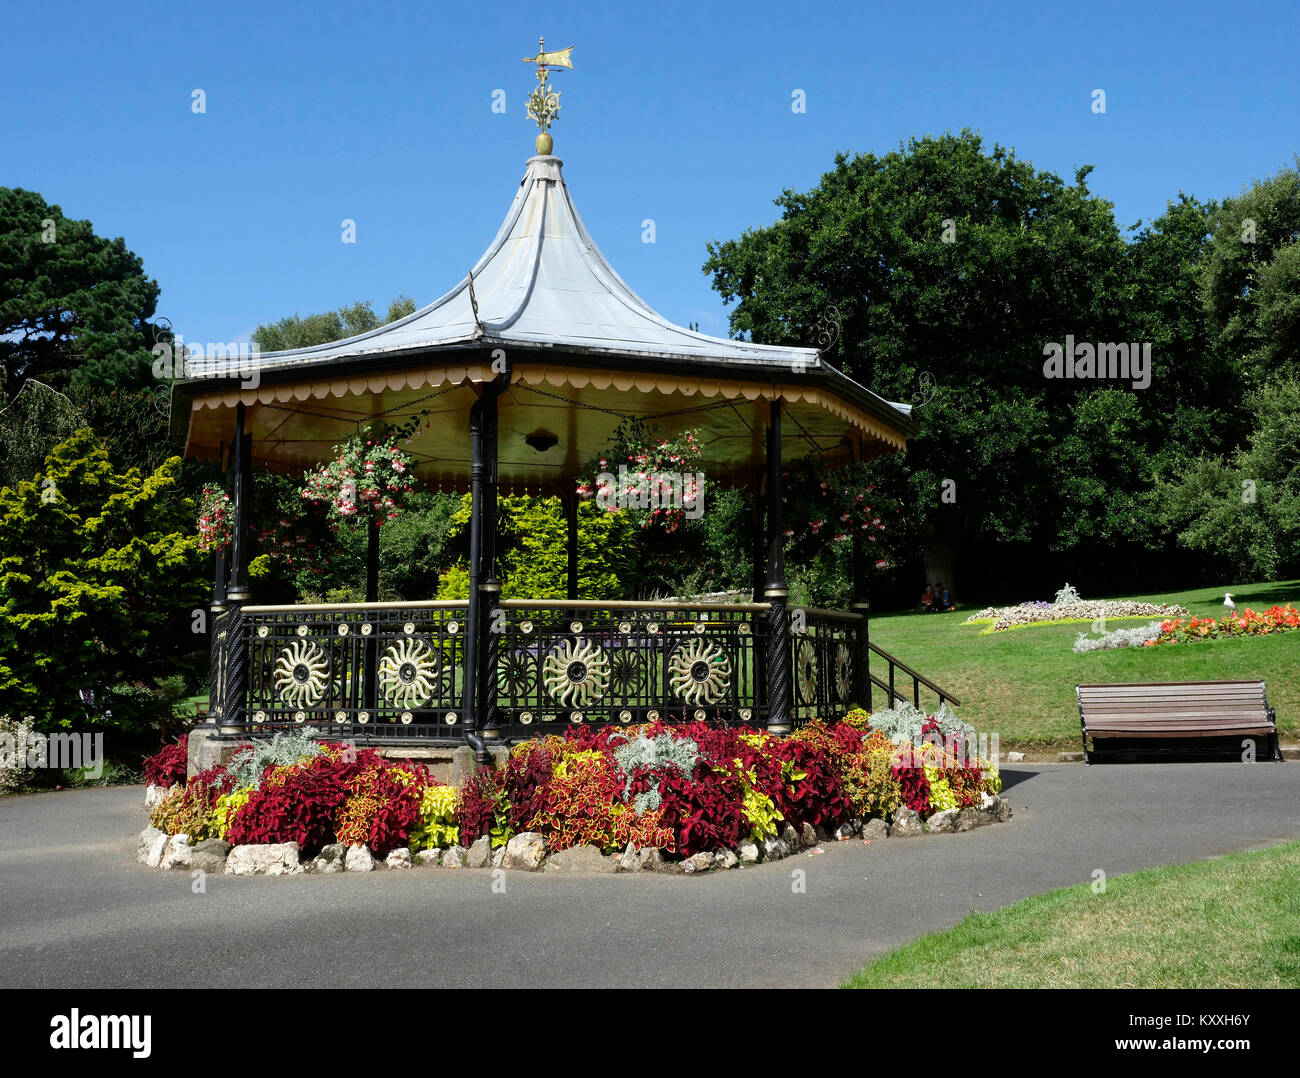 The Bandstand, Victoria Gardens, Truro, Cornwall, England, UK - Stock Image